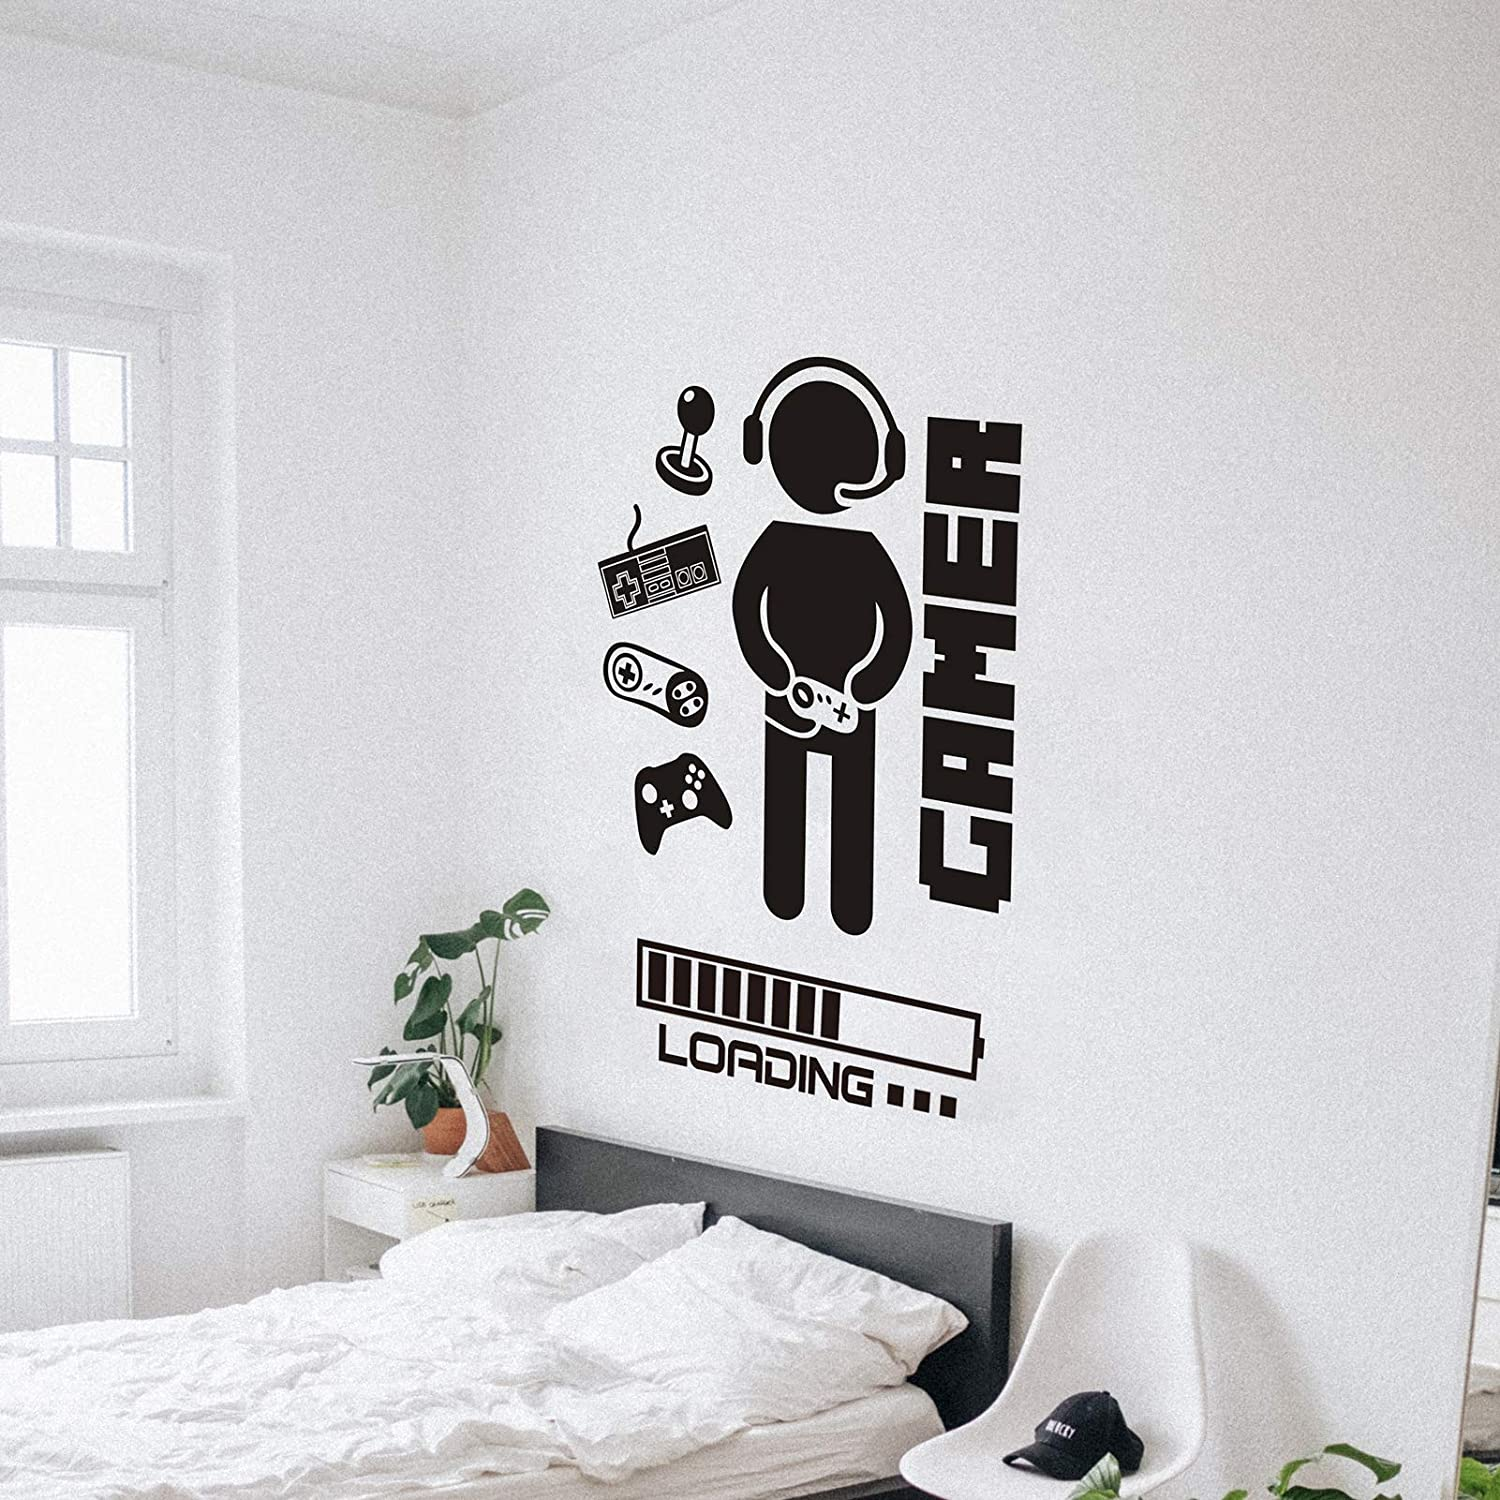 Buy Gaming Room Decor Boys Bedroom Wall Decals Stickers Video Game Loading Controller Vinyl Playroom Teen Large Cool Decoration Poster Gifts Online In Indonesia B08jv3ftt7